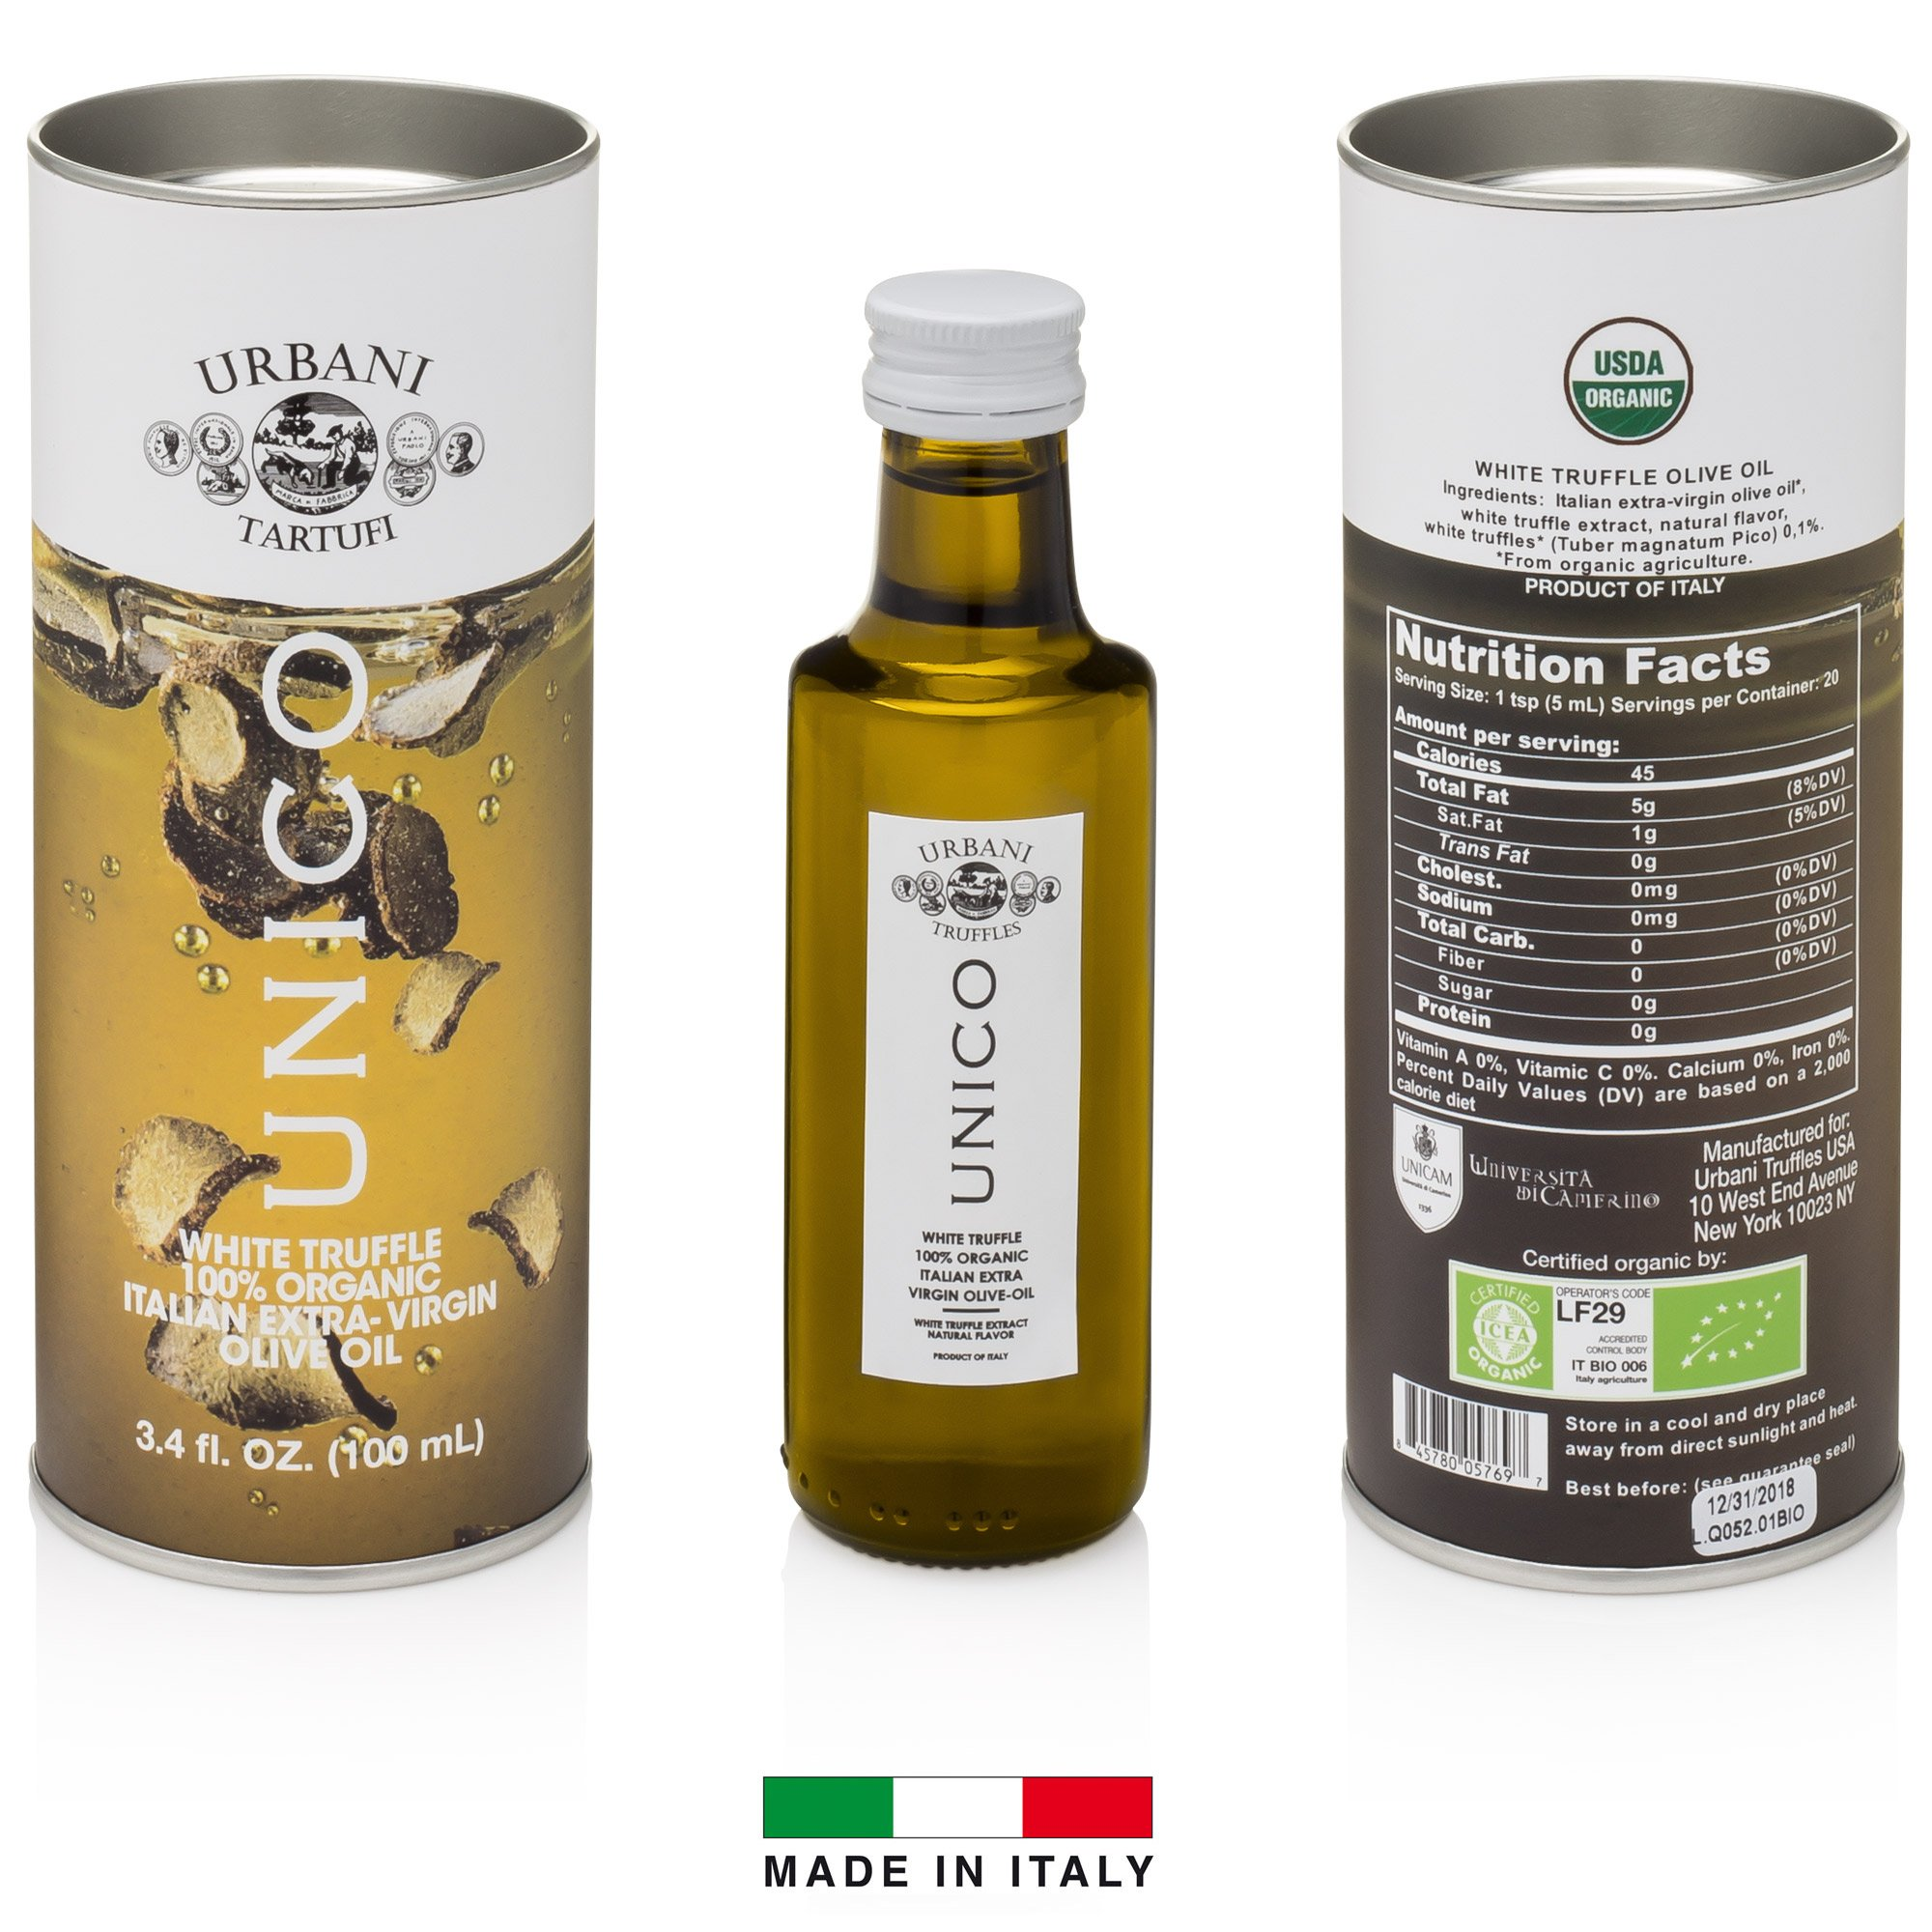 Italian White Truffle Extra Virgin Olive Oil - 3.4 Oz - by Urbani Truffles. Organic Truffle Oil 100% Made In Italy Without Chemicals And With Real Truffle Pieces Inside The Bottle. No Artificial Aroma by Urbani Truffles